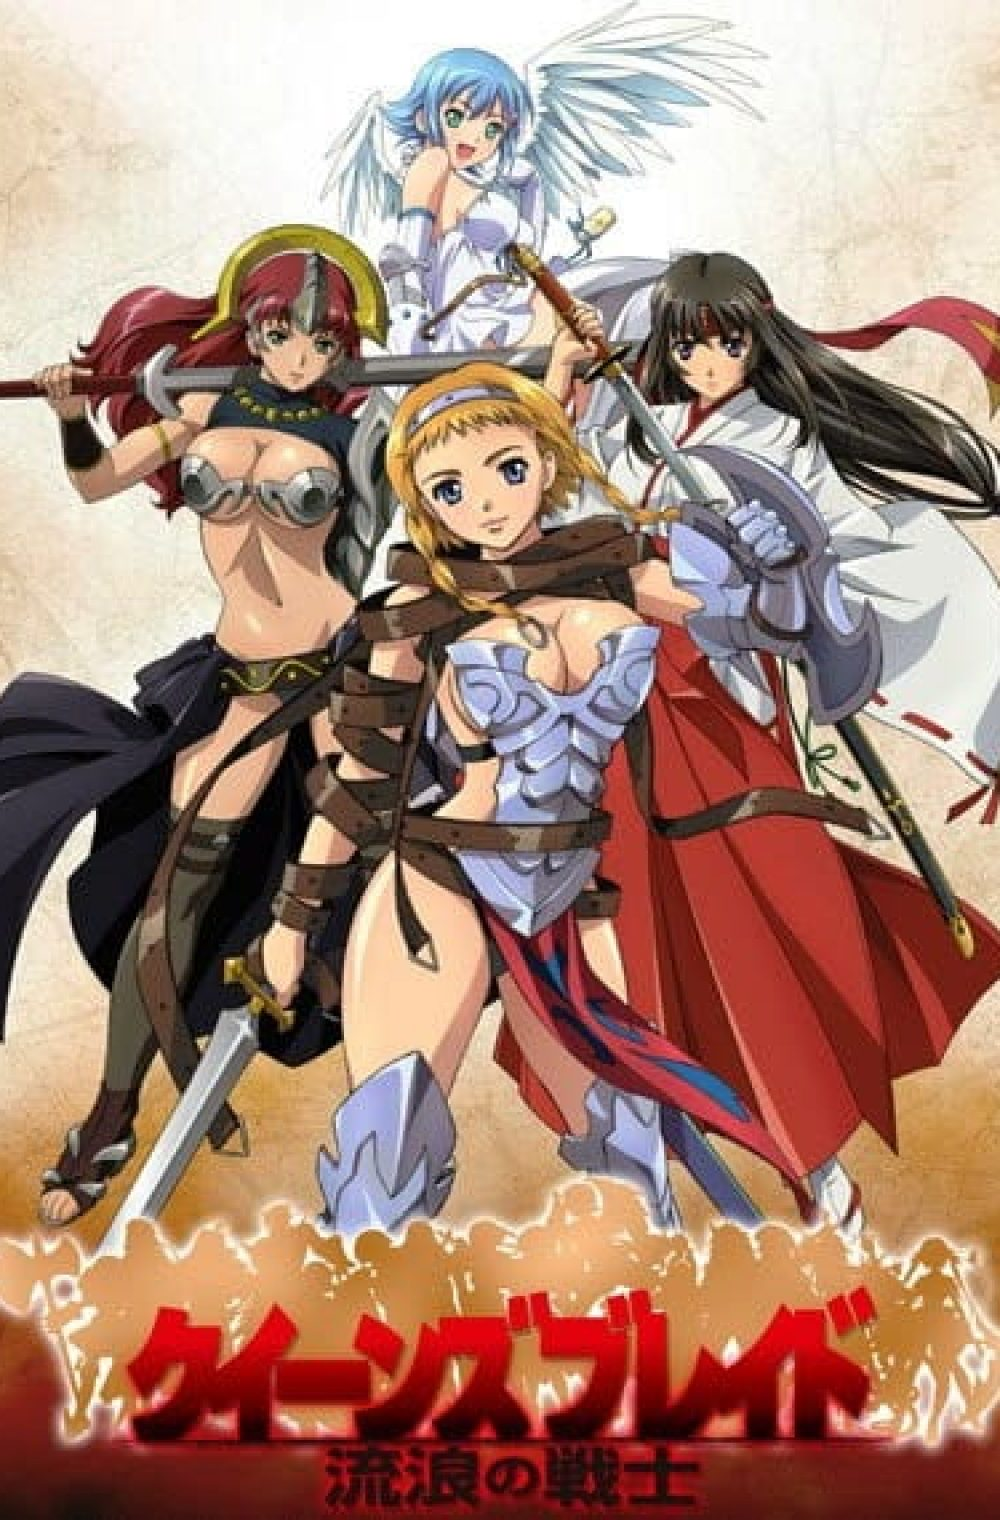 Queen's Blade: The Exiled Virgin (UNCENSORED) + Specials